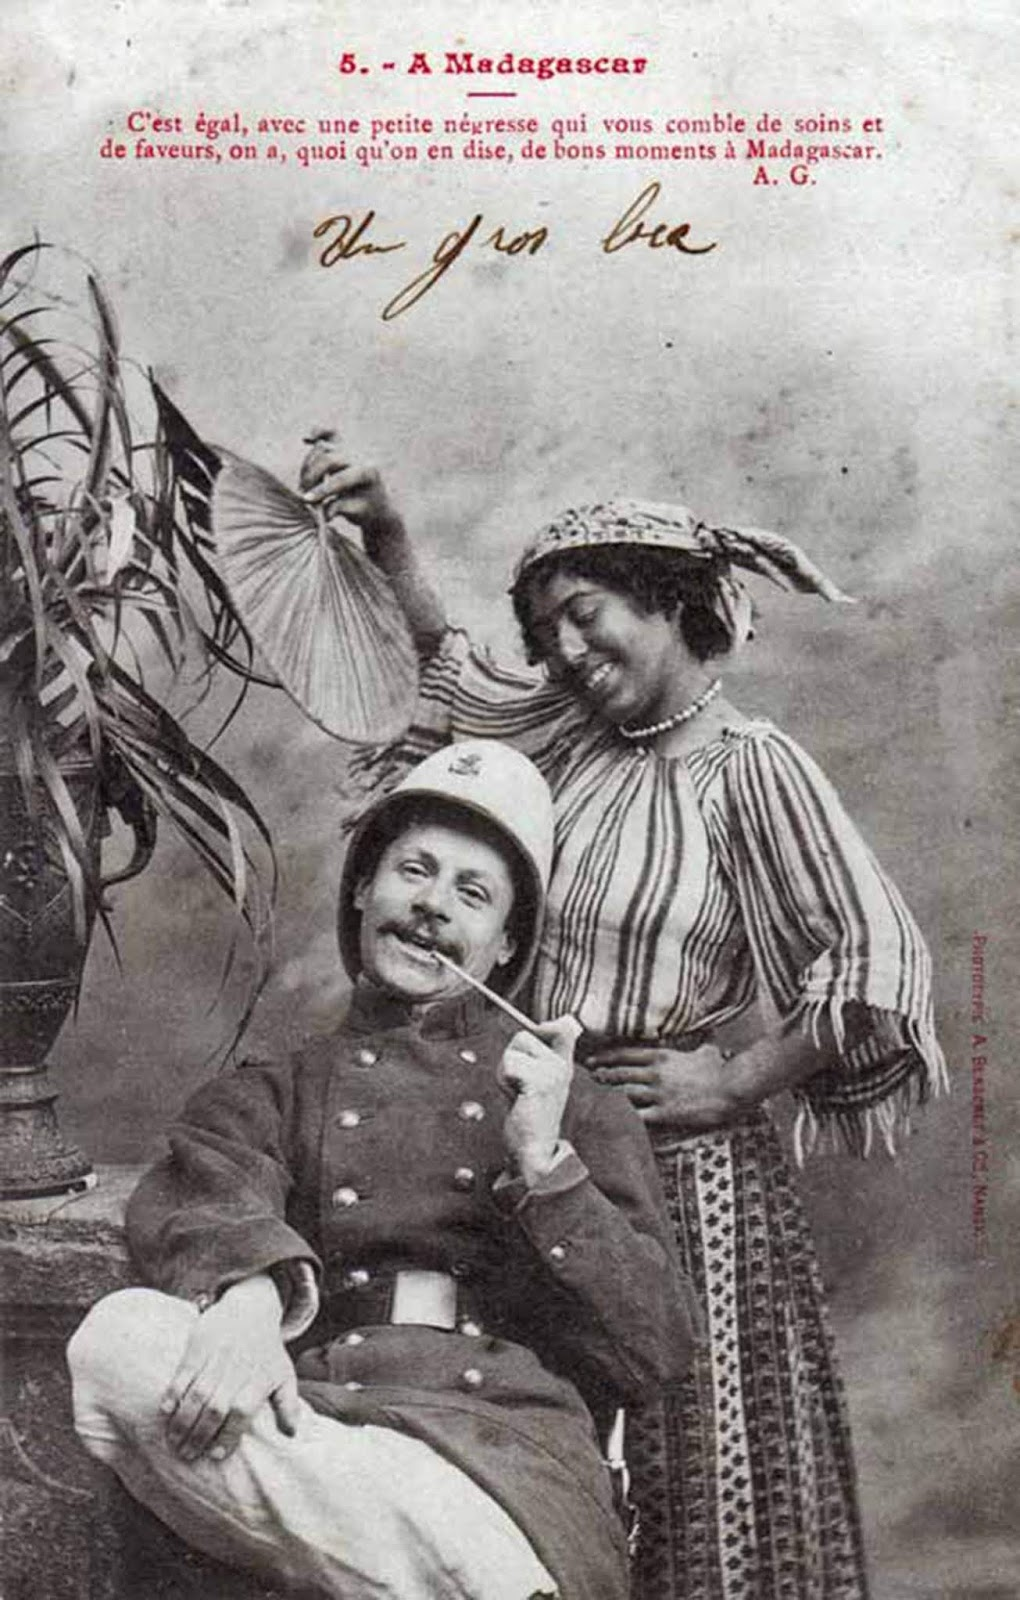 """It's all the same, with a little Black woman taking care of your needs and showing you favor, it doesn't matter what people say, these are good times in Madagaskar."" French postcard."